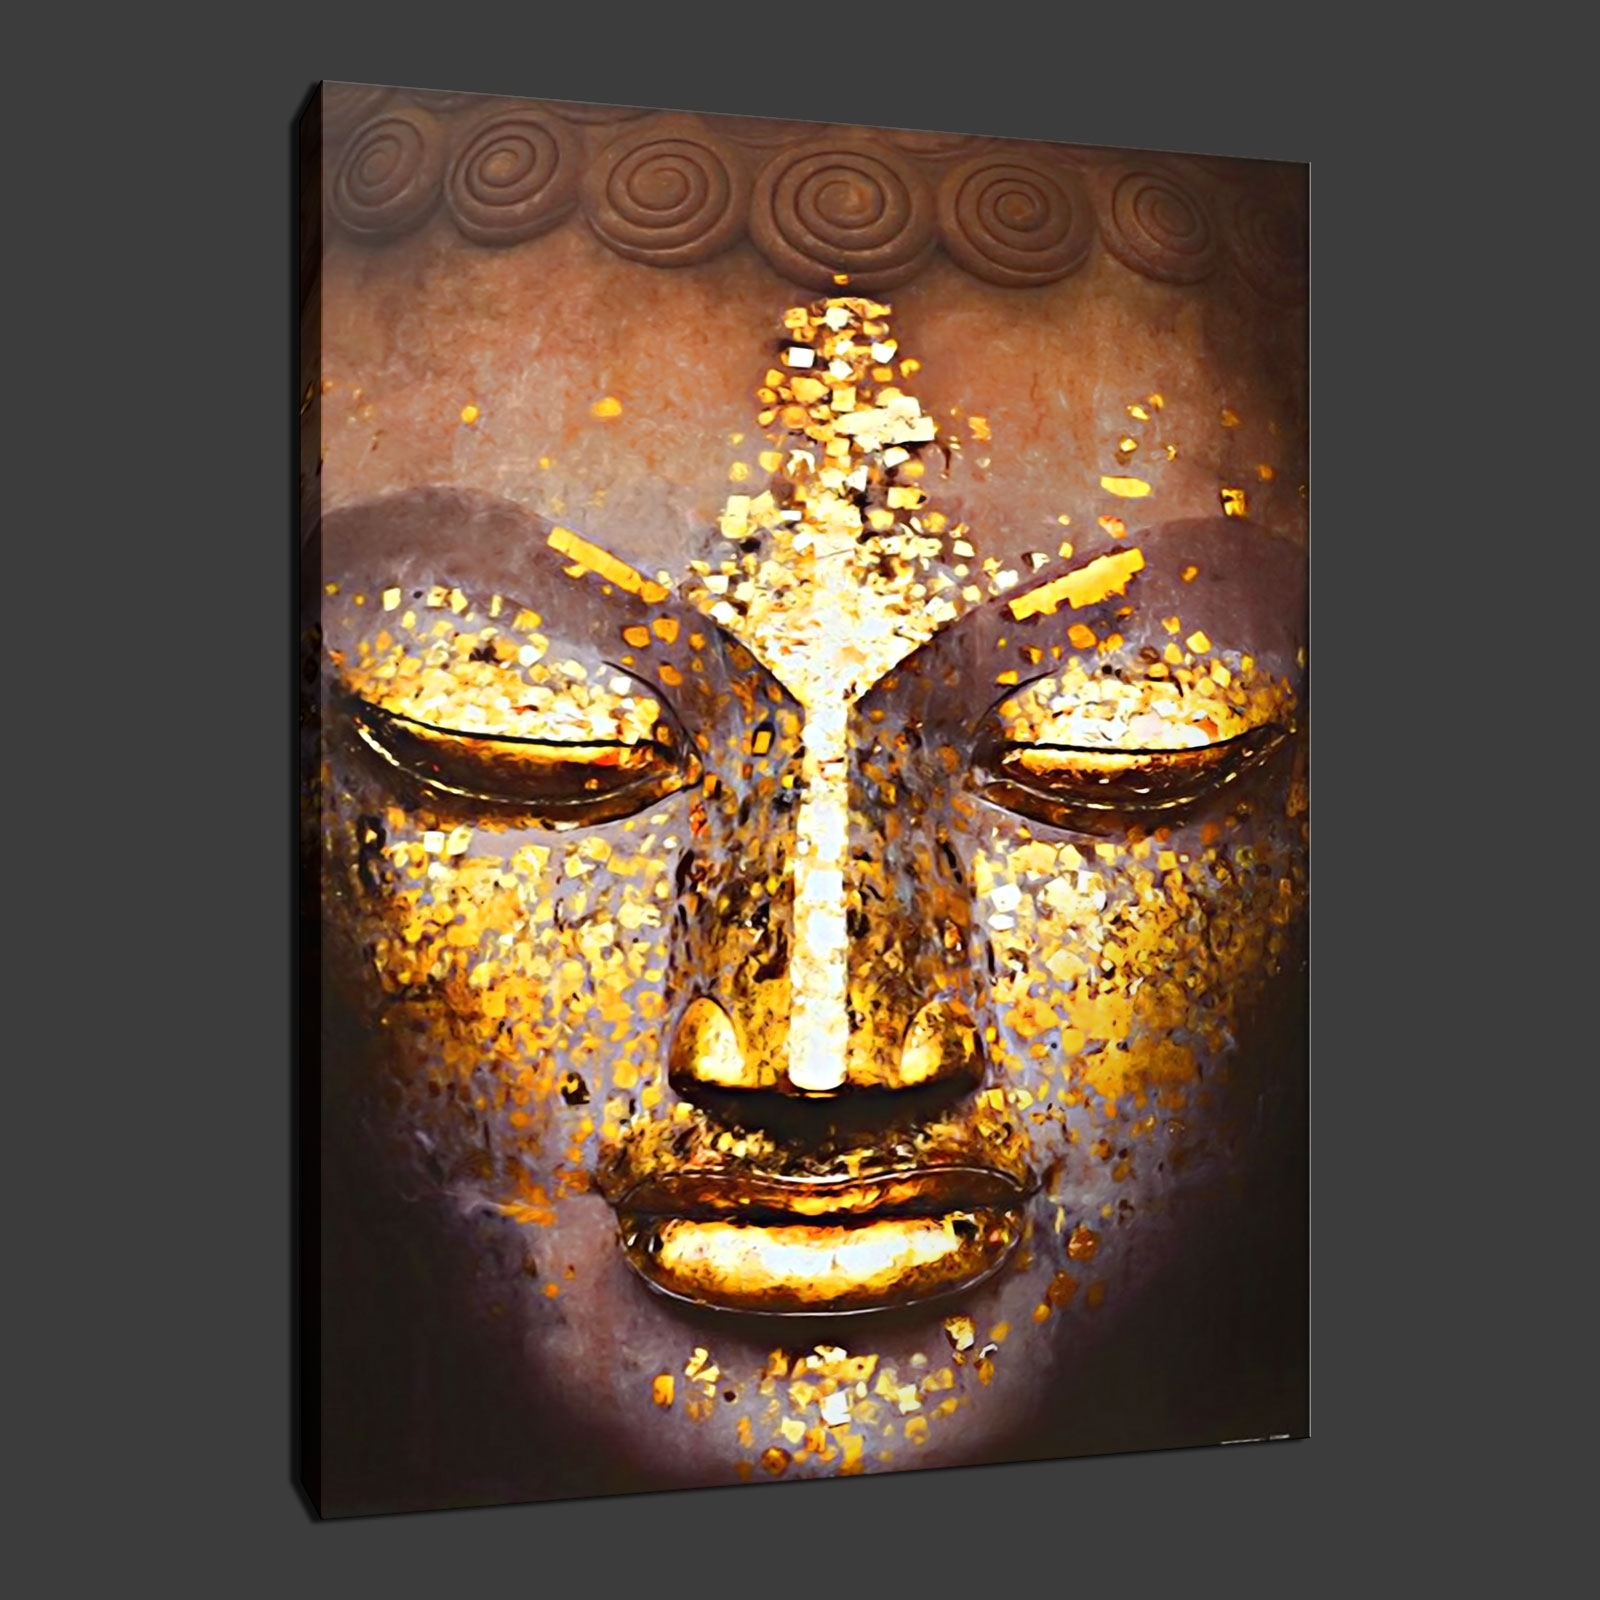 Ethnic Canvas Wall Art Regarding Most Up To Date Buddha Ethnic Quality Canvas Print Wall Art Ready To Hang In Art (Gallery 3 of 15)